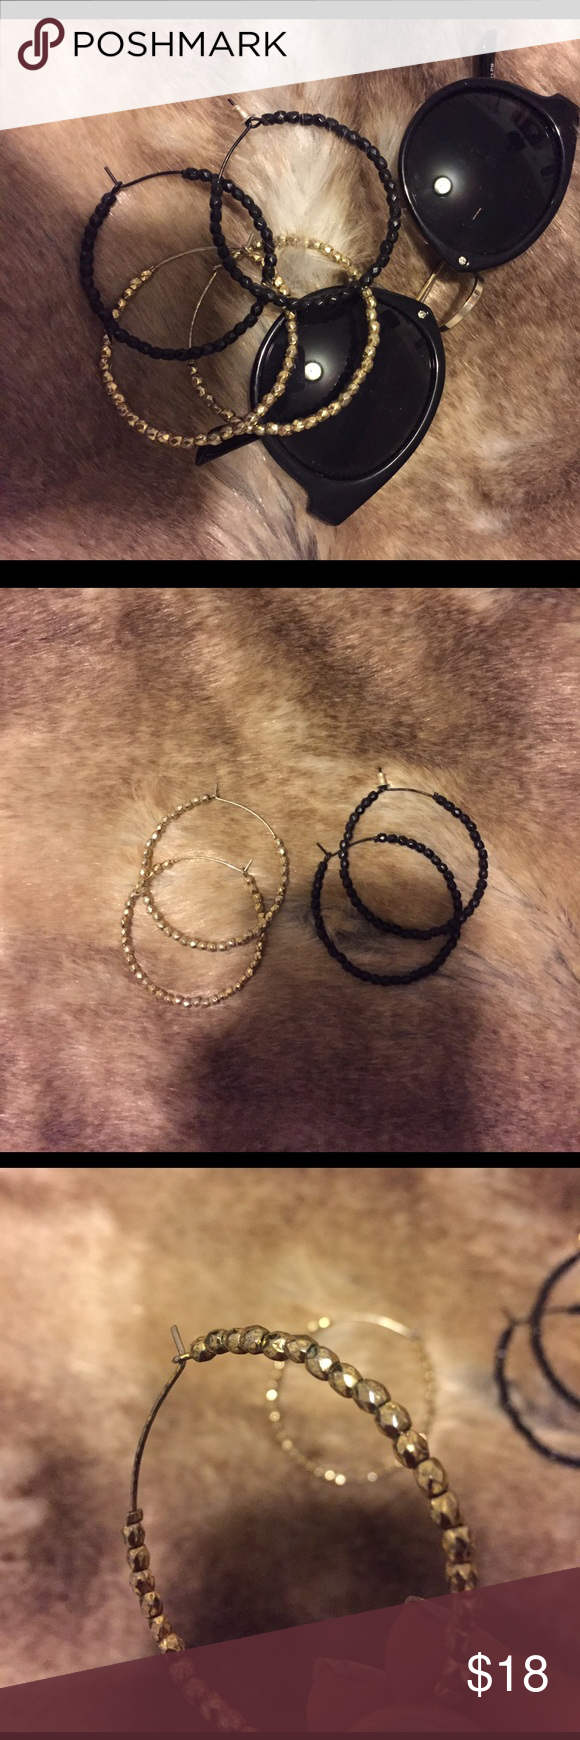 BUNDLE! 2 Pairs Express Hoop Earrings EUC Express Jewelry Earrings